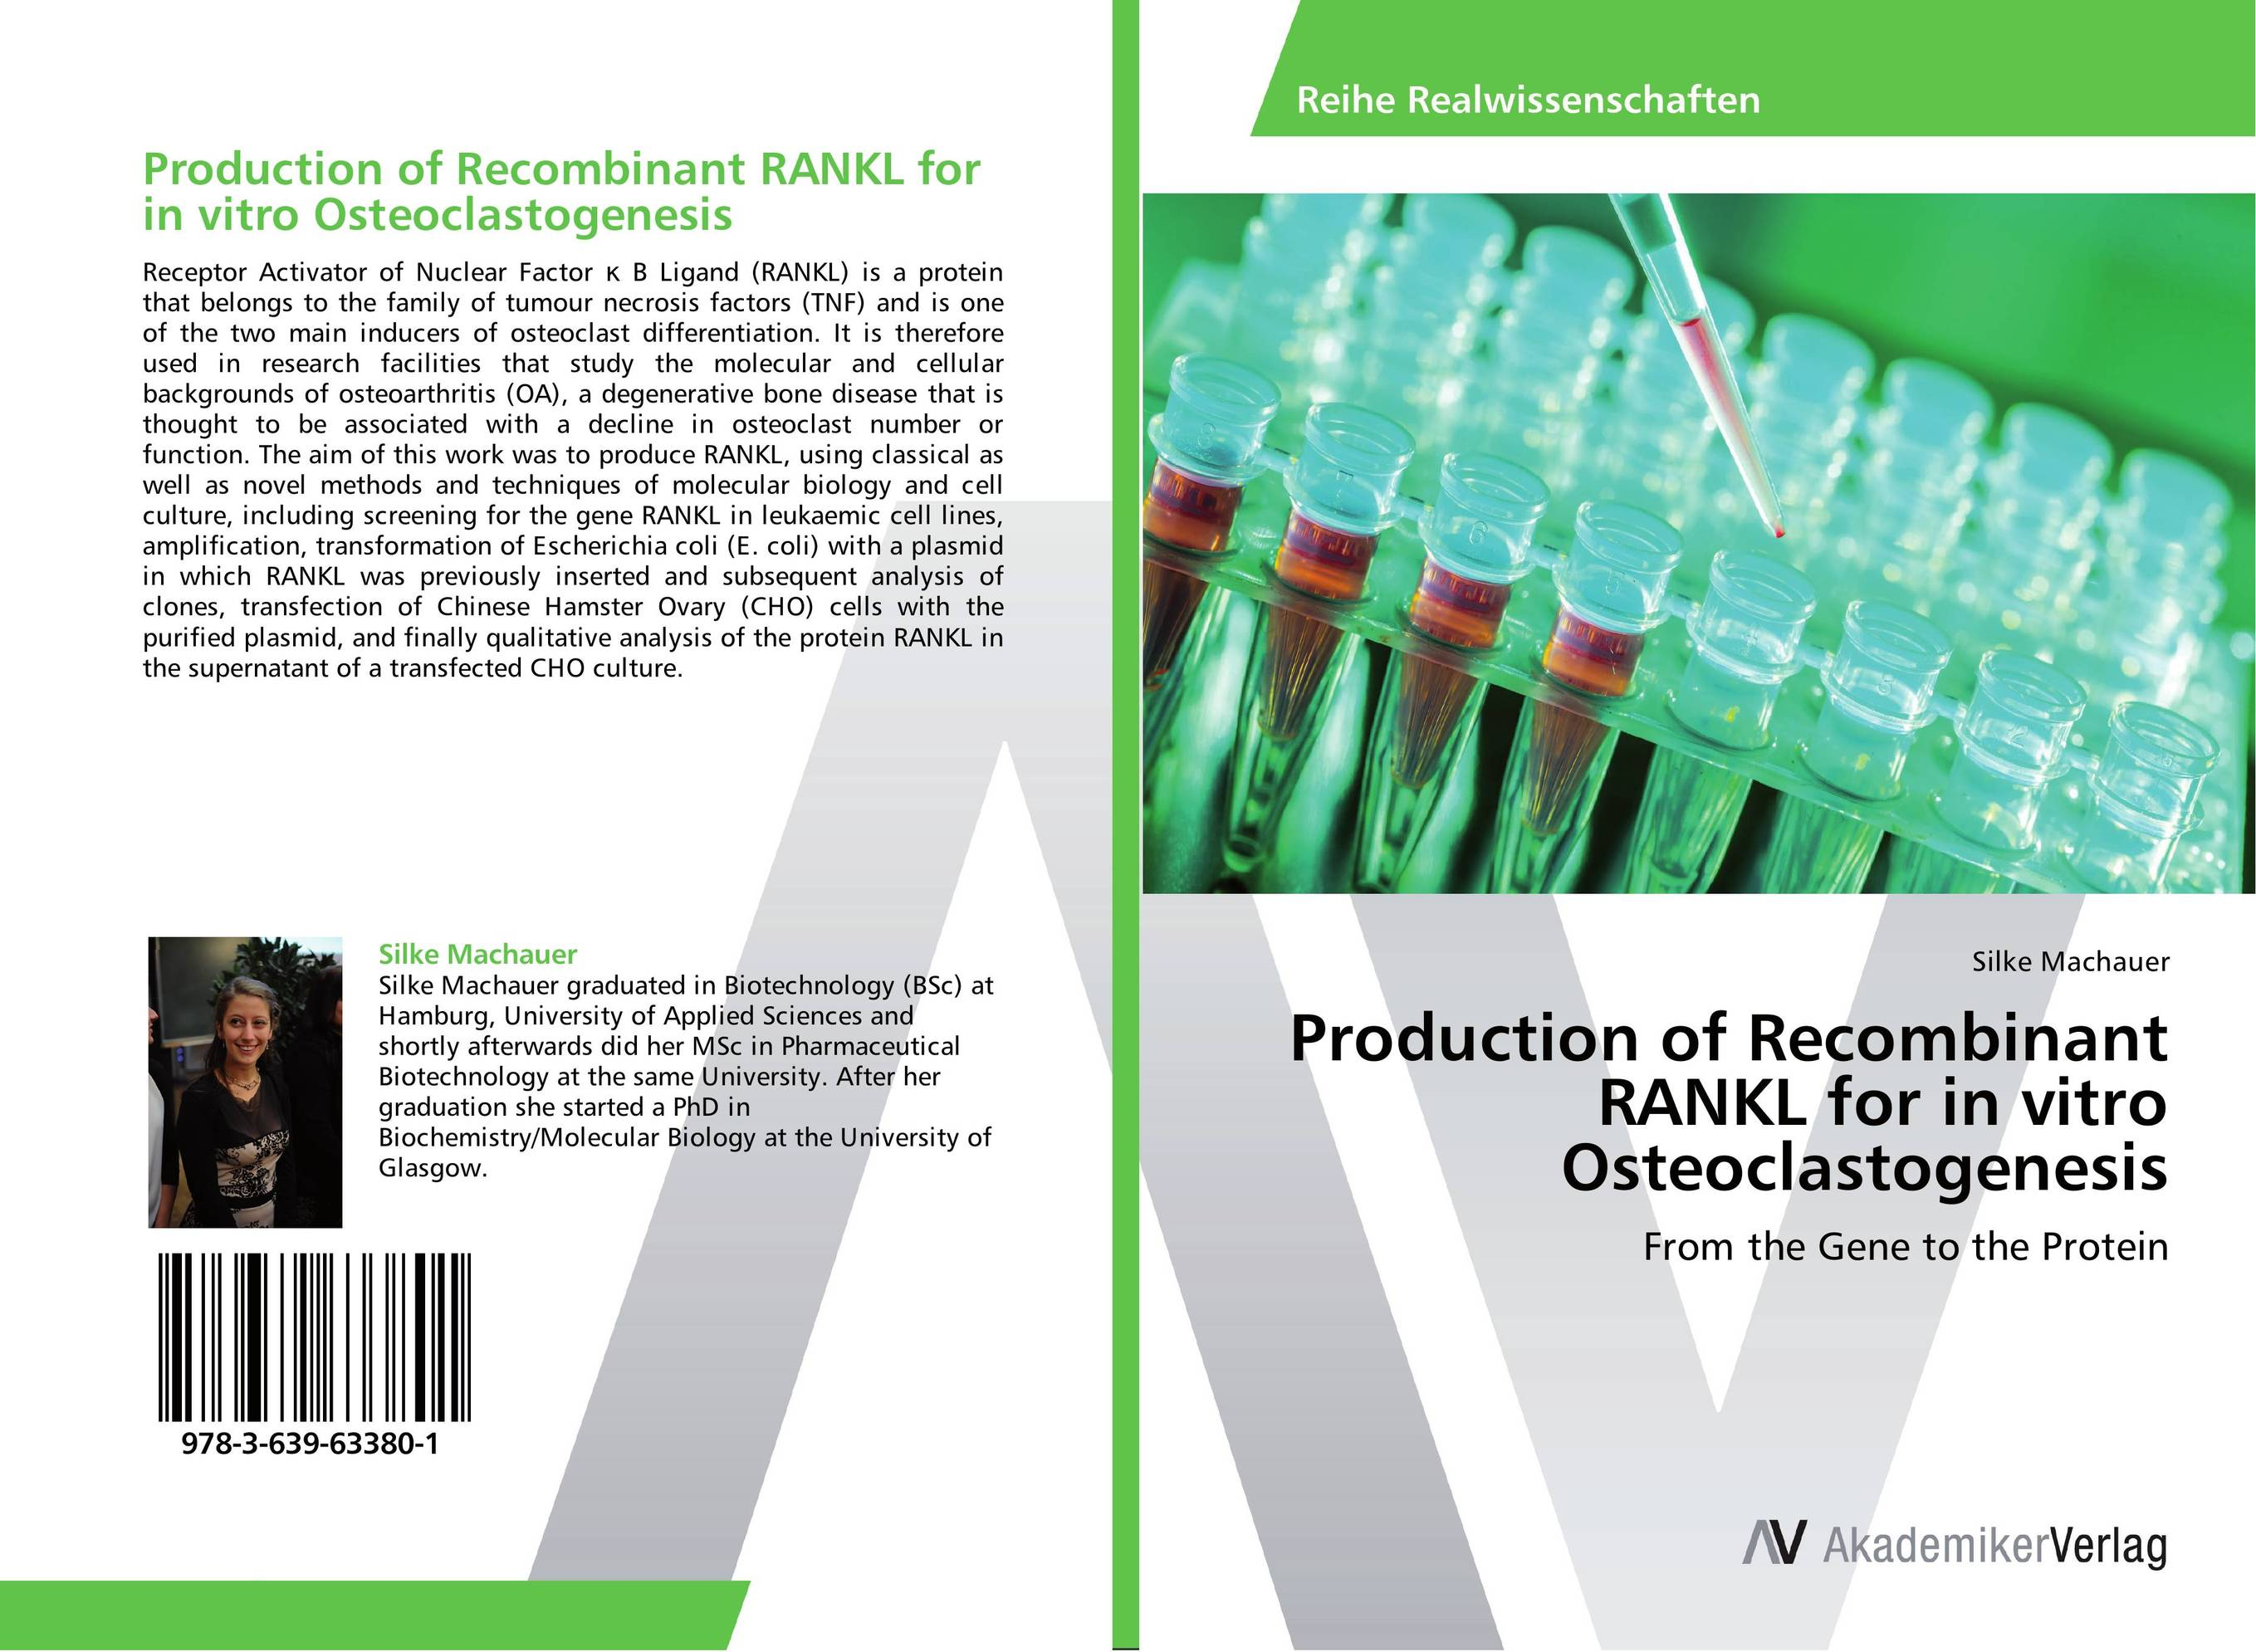 Production of Recombinant RANKL for in vitro Osteoclastogenesis production of recombinant rankl for in vitro osteoclastogenesis